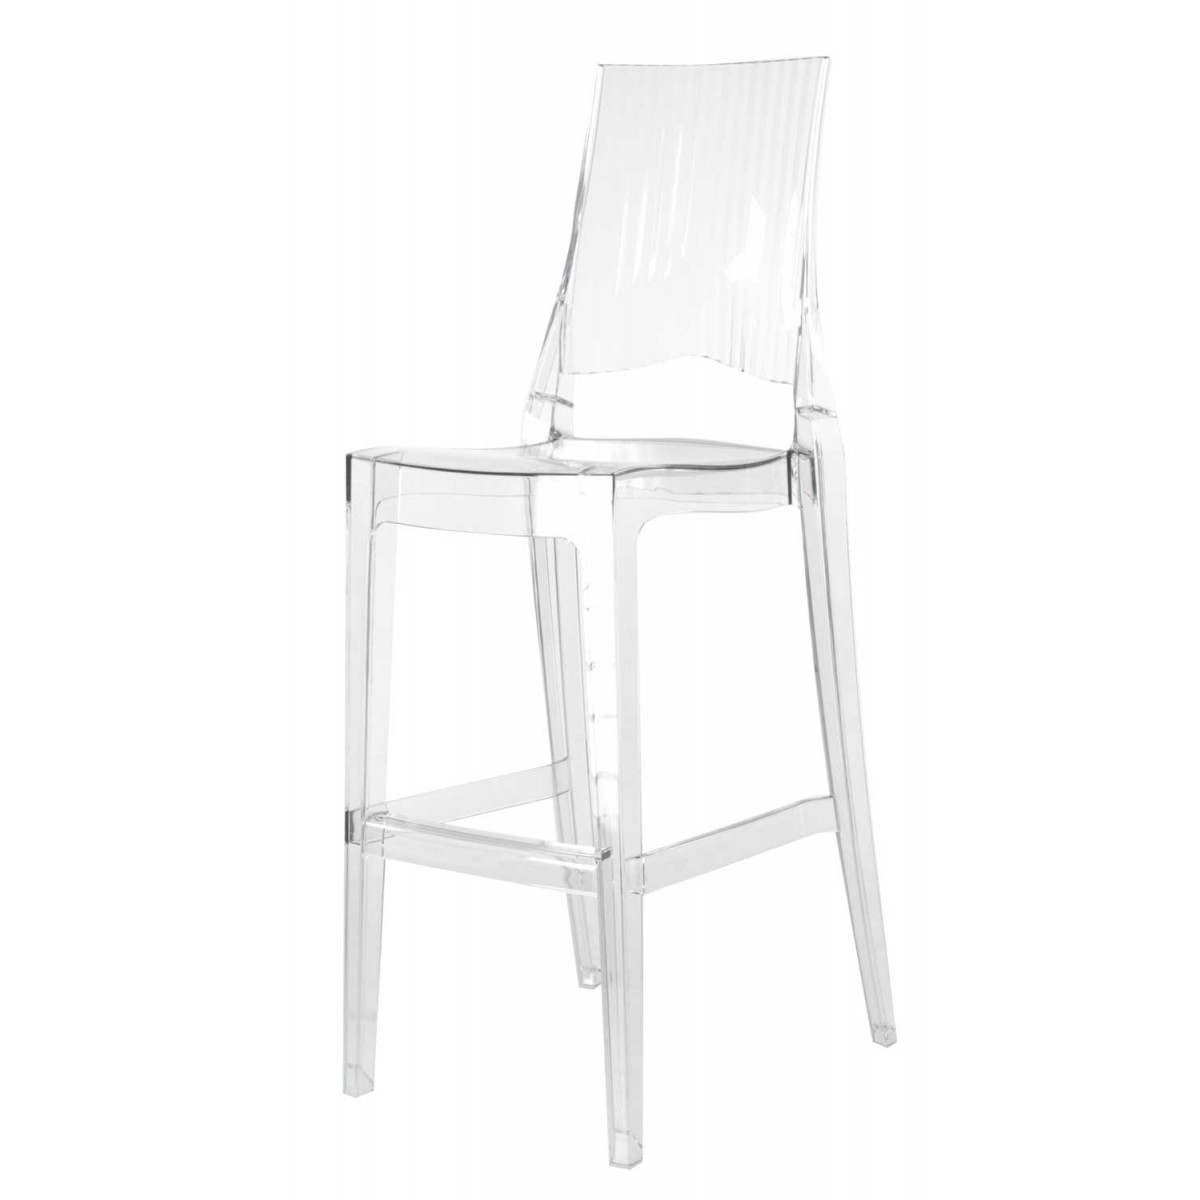 Tabourets De Bar Transparents 2 X Tabouret De Bar Transparent Polycarbonate Glenda